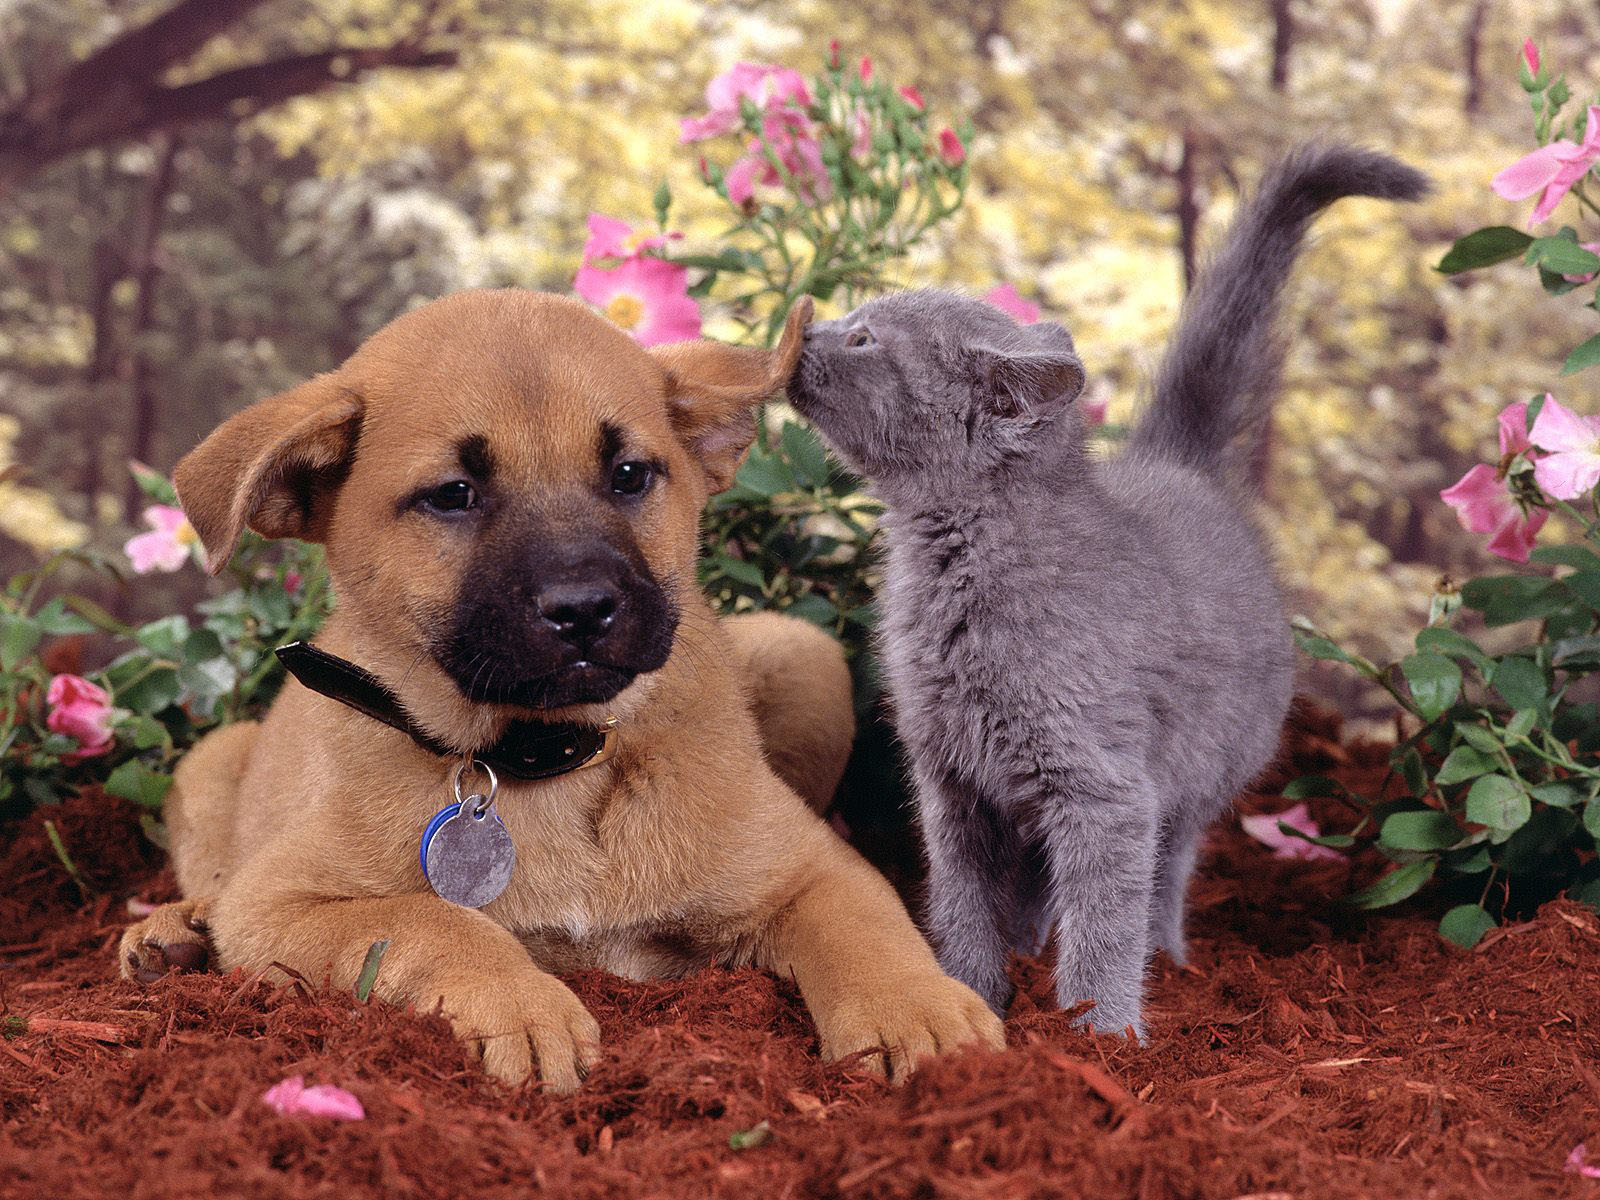 Free Download Dogs And Cats Dogs Vs Cats Wallpaper 13631892 1600x1200 For Your Desktop Mobile Tablet Explore 73 Cats And Dogs Wallpaper Wallpaper Crazy Cats And Dogs Free Cat